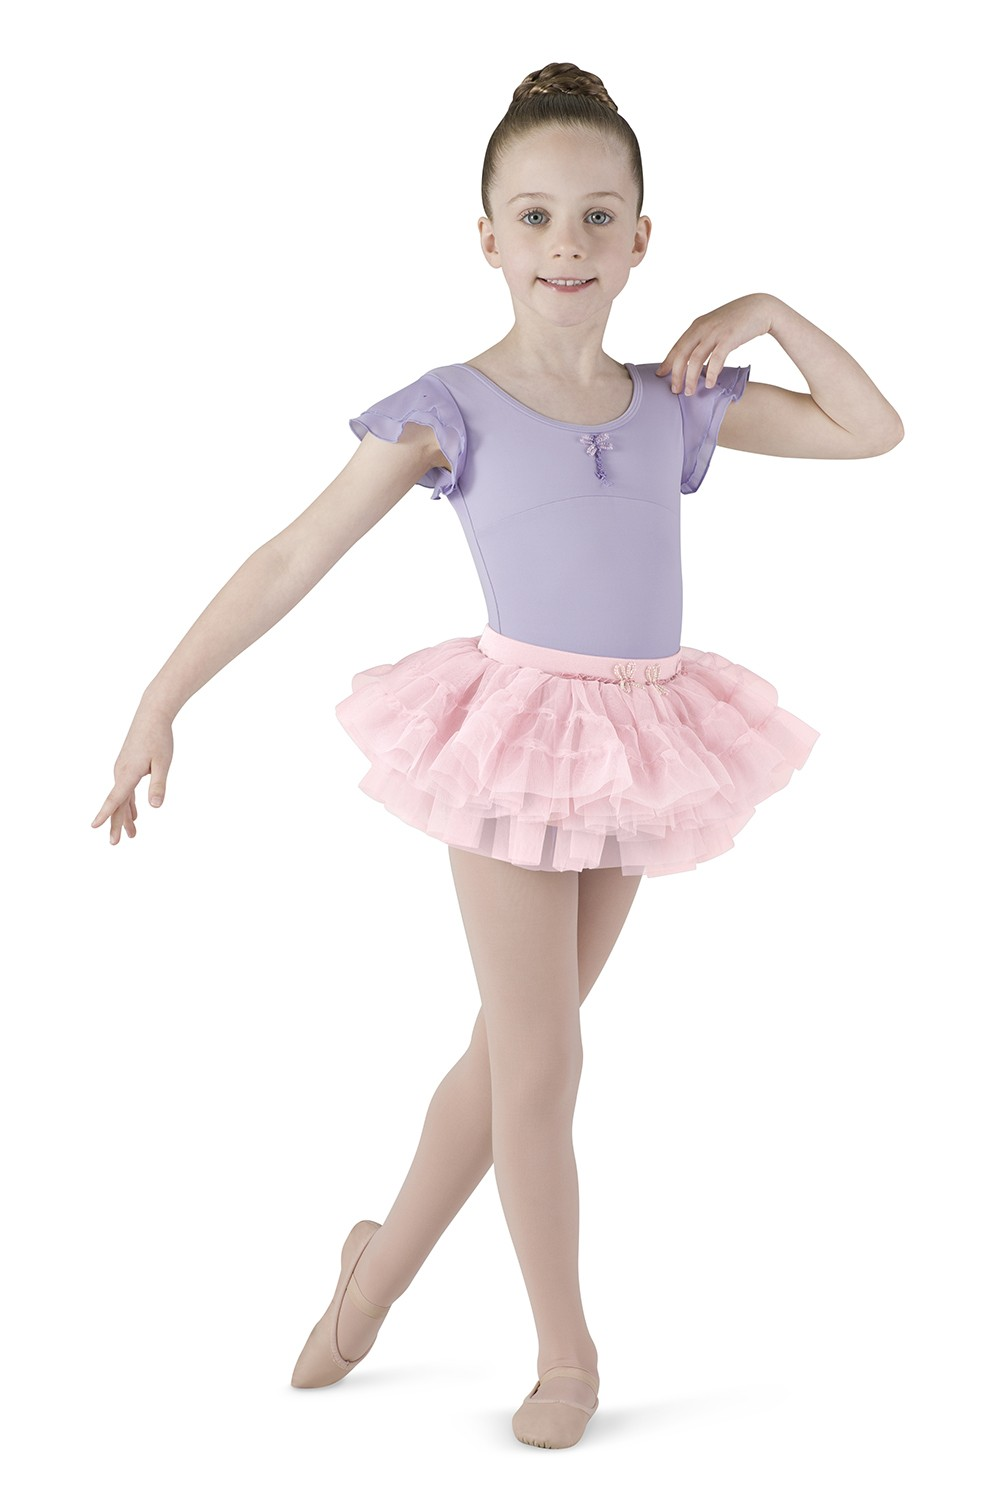 Dragonfly Tutu Children's Dance Skirts